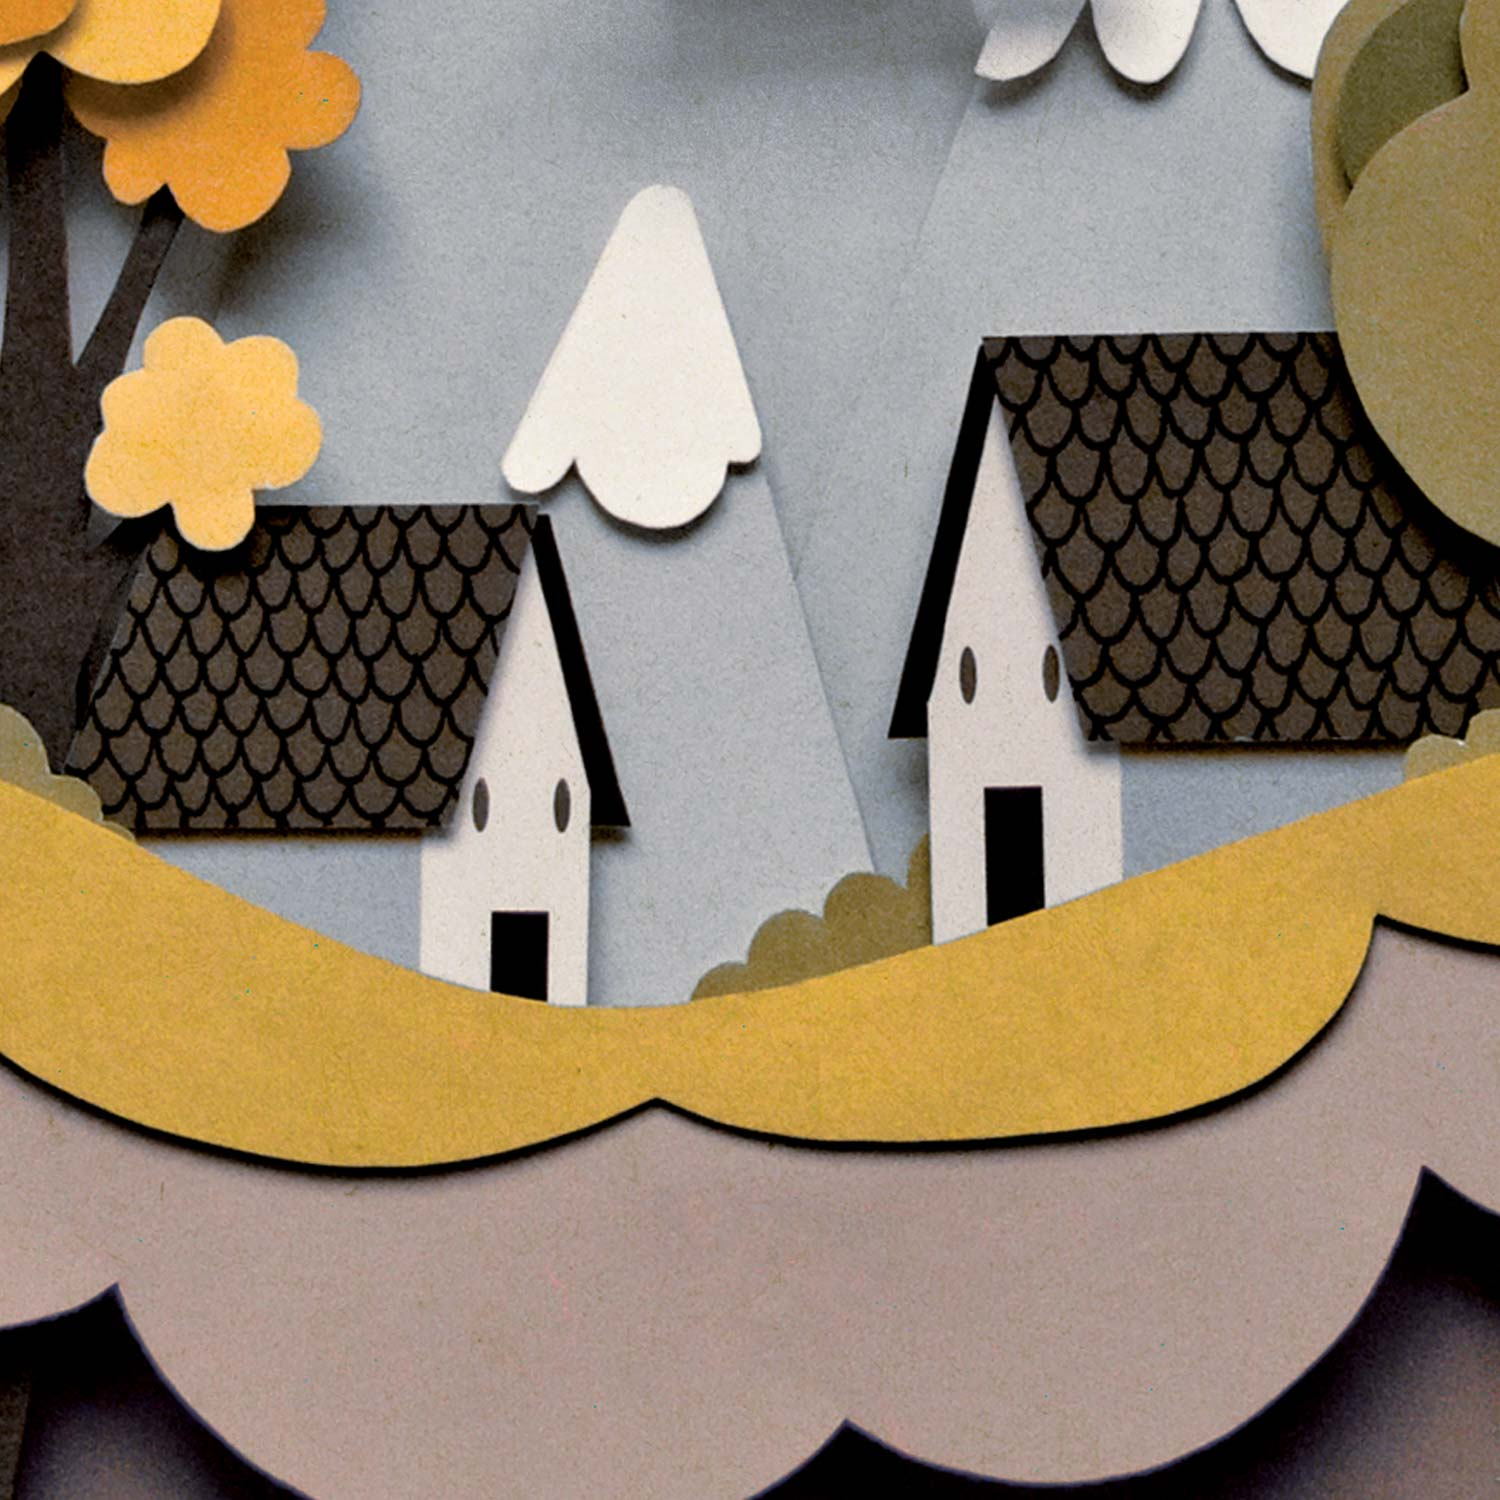 Papercut illustration. Paper art. Cut out illustration. Collage. Home illustrations. Trees illustration. Paper diorama.